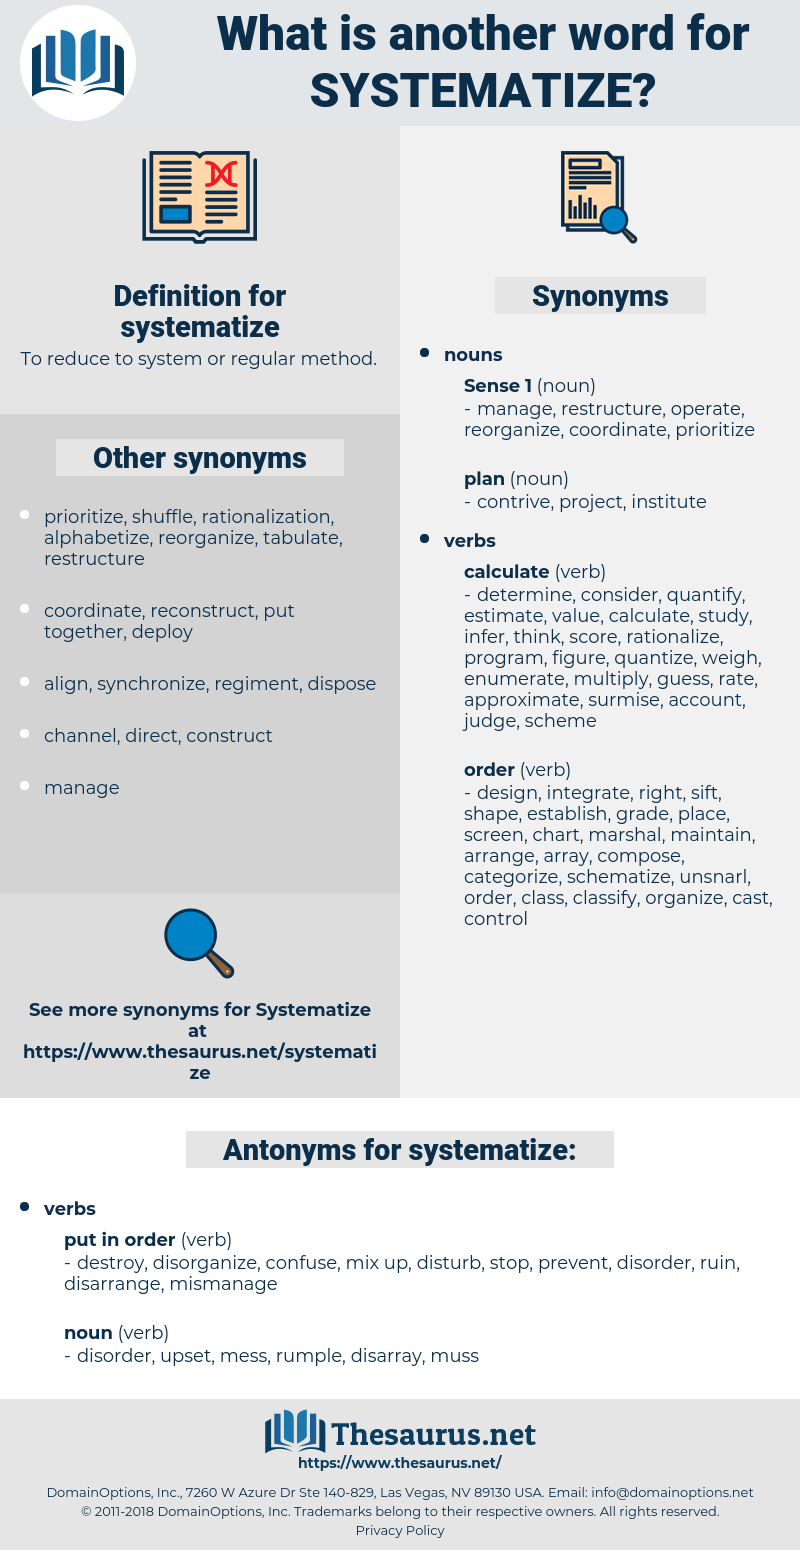 systematize, synonym systematize, another word for systematize, words like systematize, thesaurus systematize